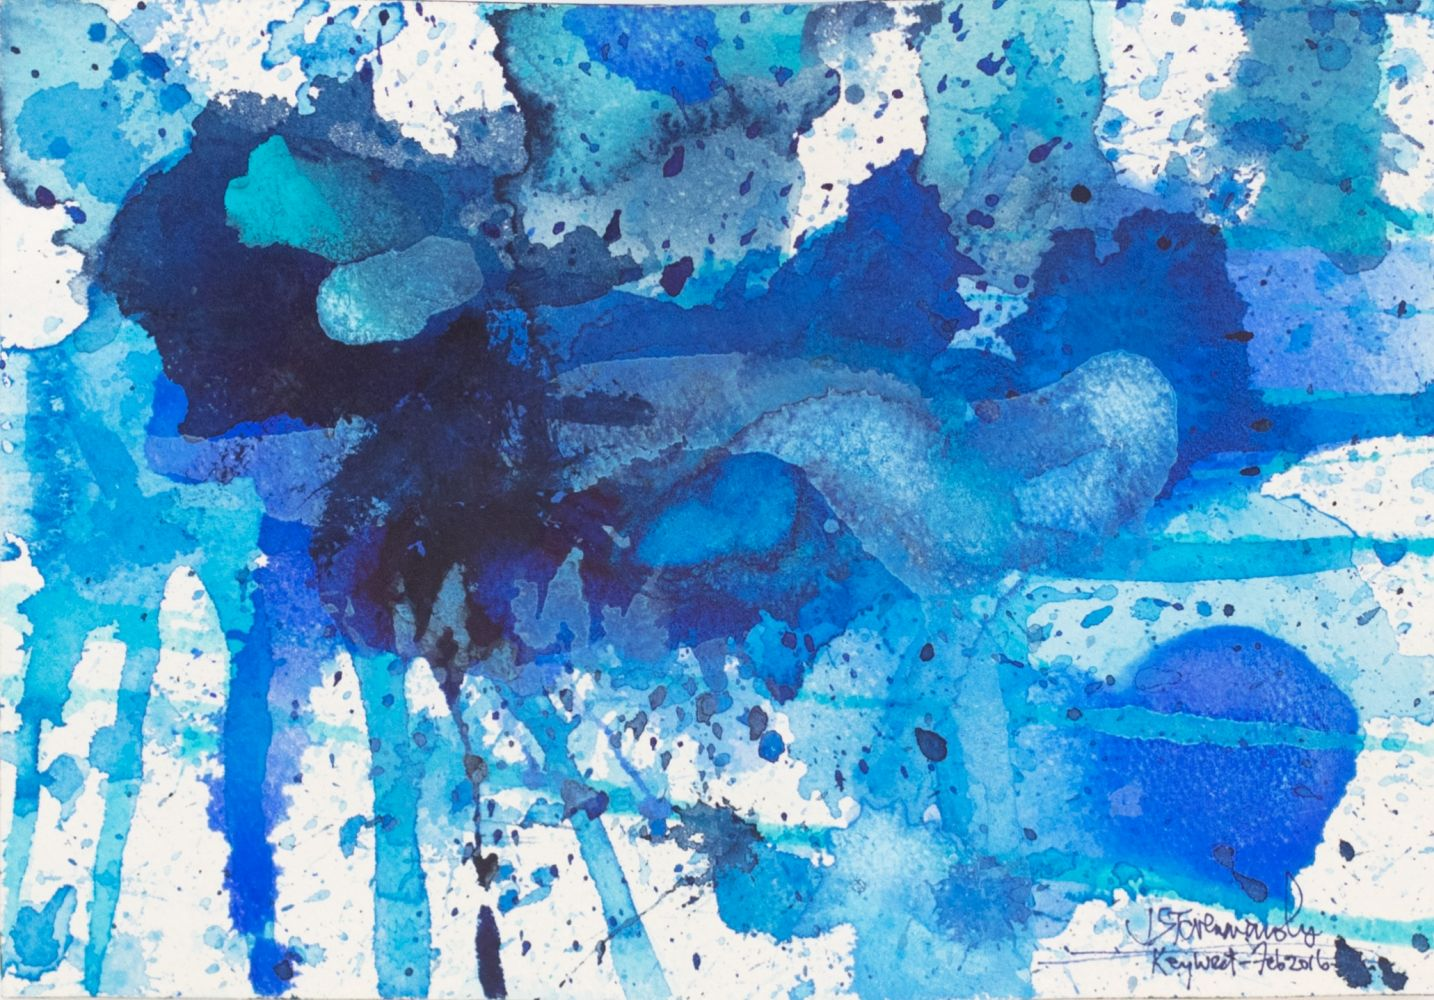 J. Steven Manolis, Splash (Key West) 07.10.06, Watercolor, Acrylic and Gouache on Arches paper, 2016, 7 x 10 inches, Abstract expressionism paintings for sale at Manolis Projects Art Gallery, Miami, Fl